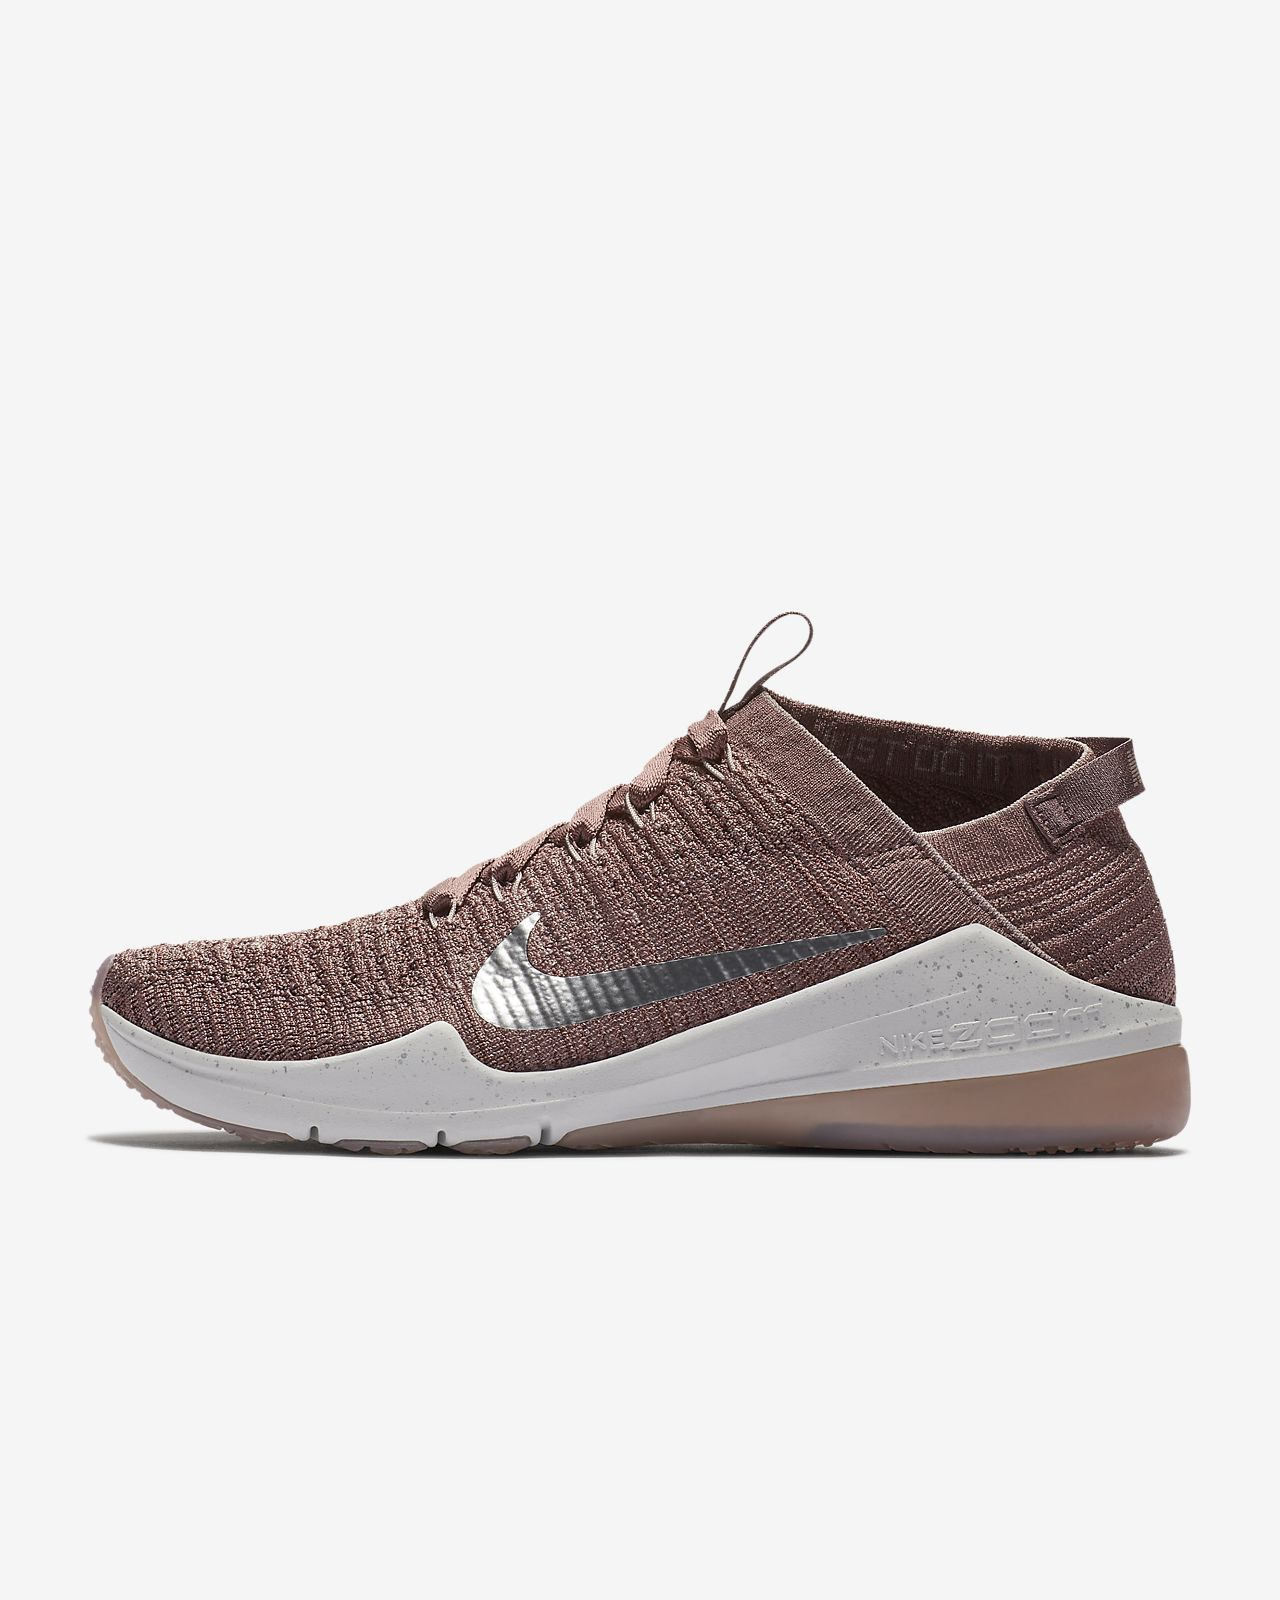 Nike Air Zoom Fearless Flyknit 2 LM Women's Gym/Training/Boxing Shoe